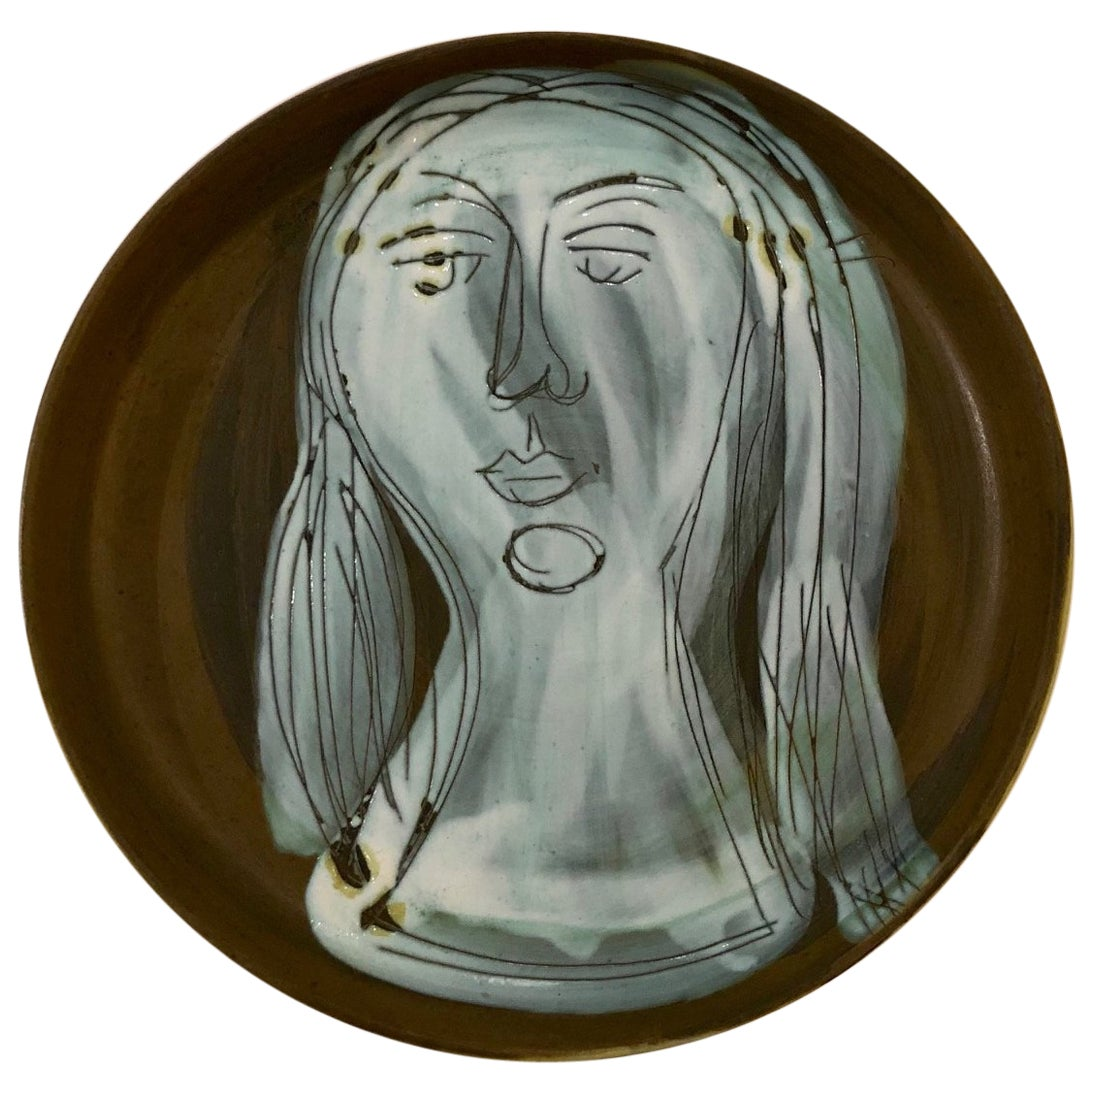 Ceramic Dish with Woman's Face Signed by Jacques Innocenti, 1950s